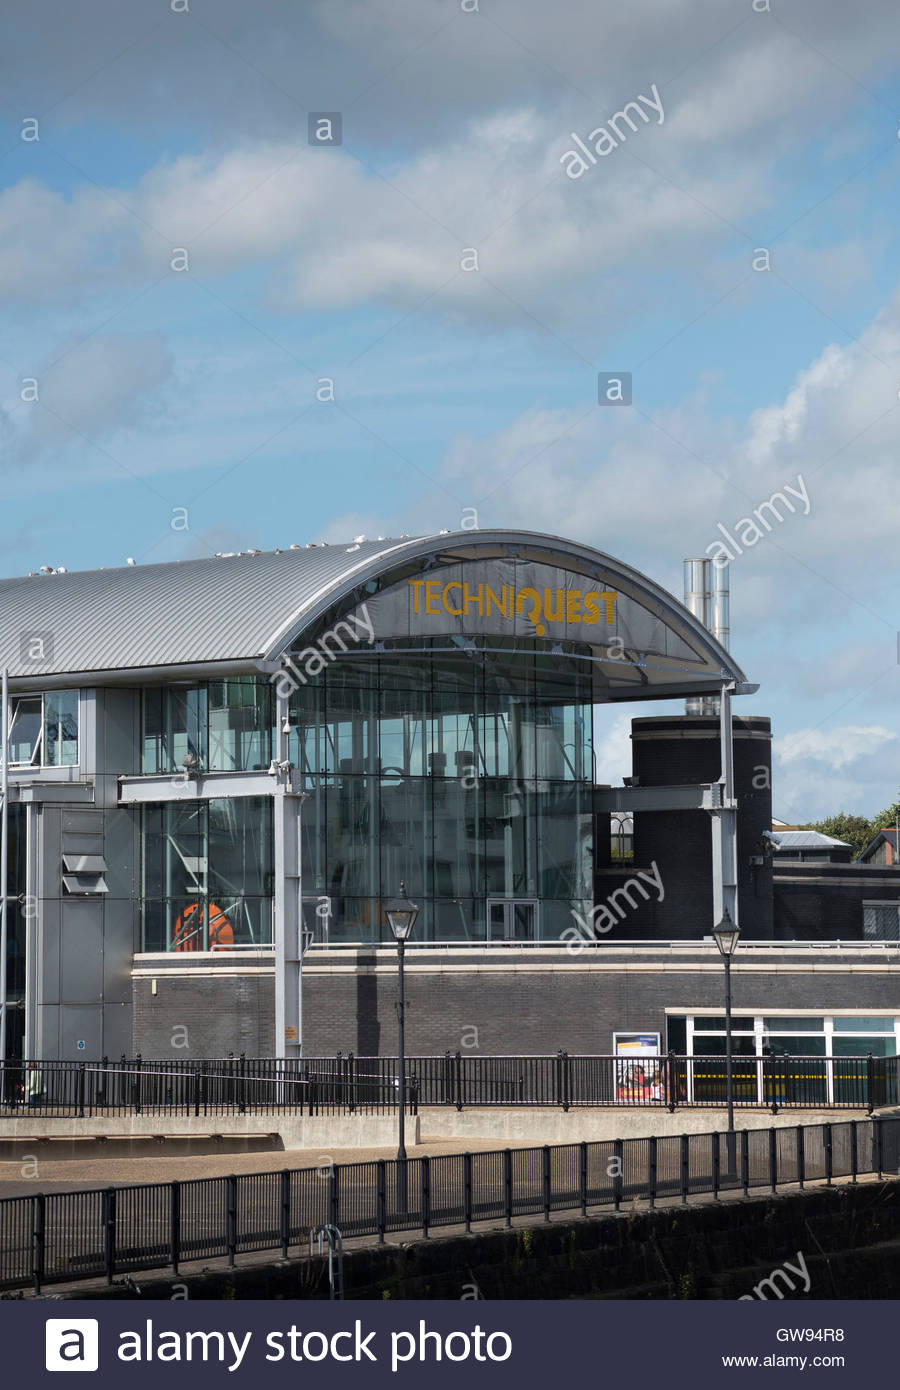 Techniquest South Wales, Techniquest Science Museum at Cardiff Bay, South Wales Stock Photo ...